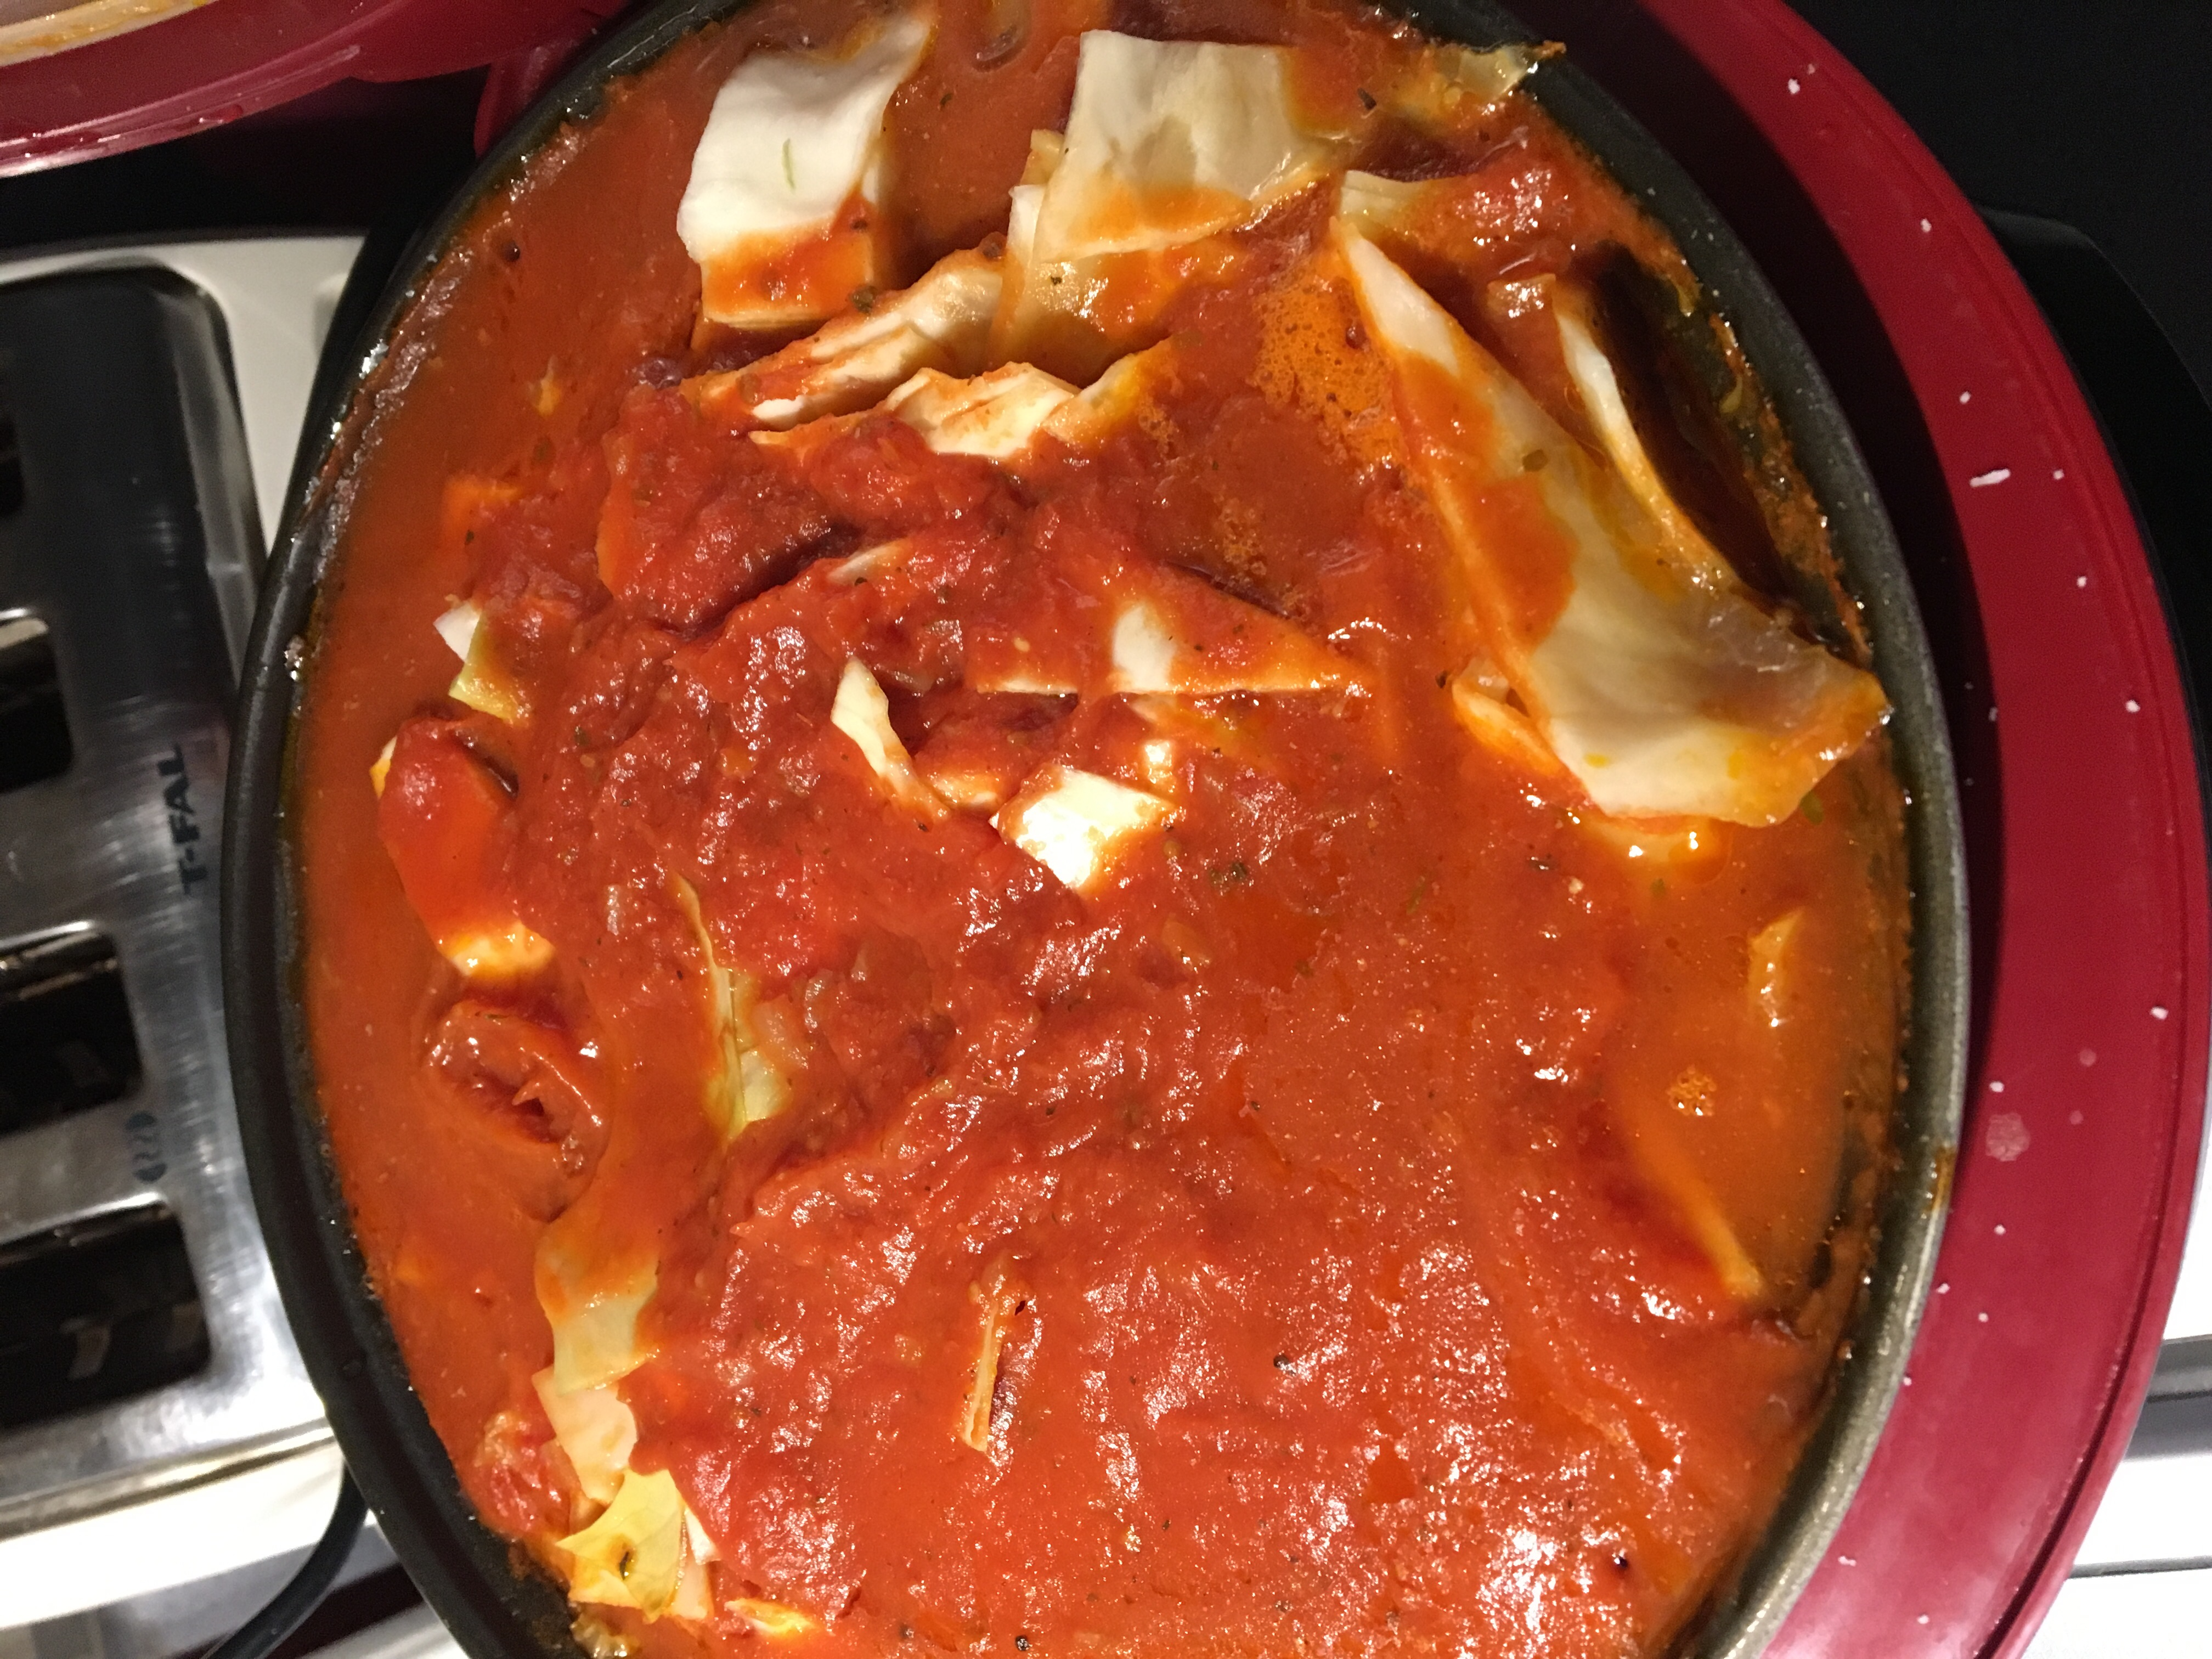 Photo of cabbage roll casserole in a slow rice cooker, but there is cabbage and rice that look raw in the top.